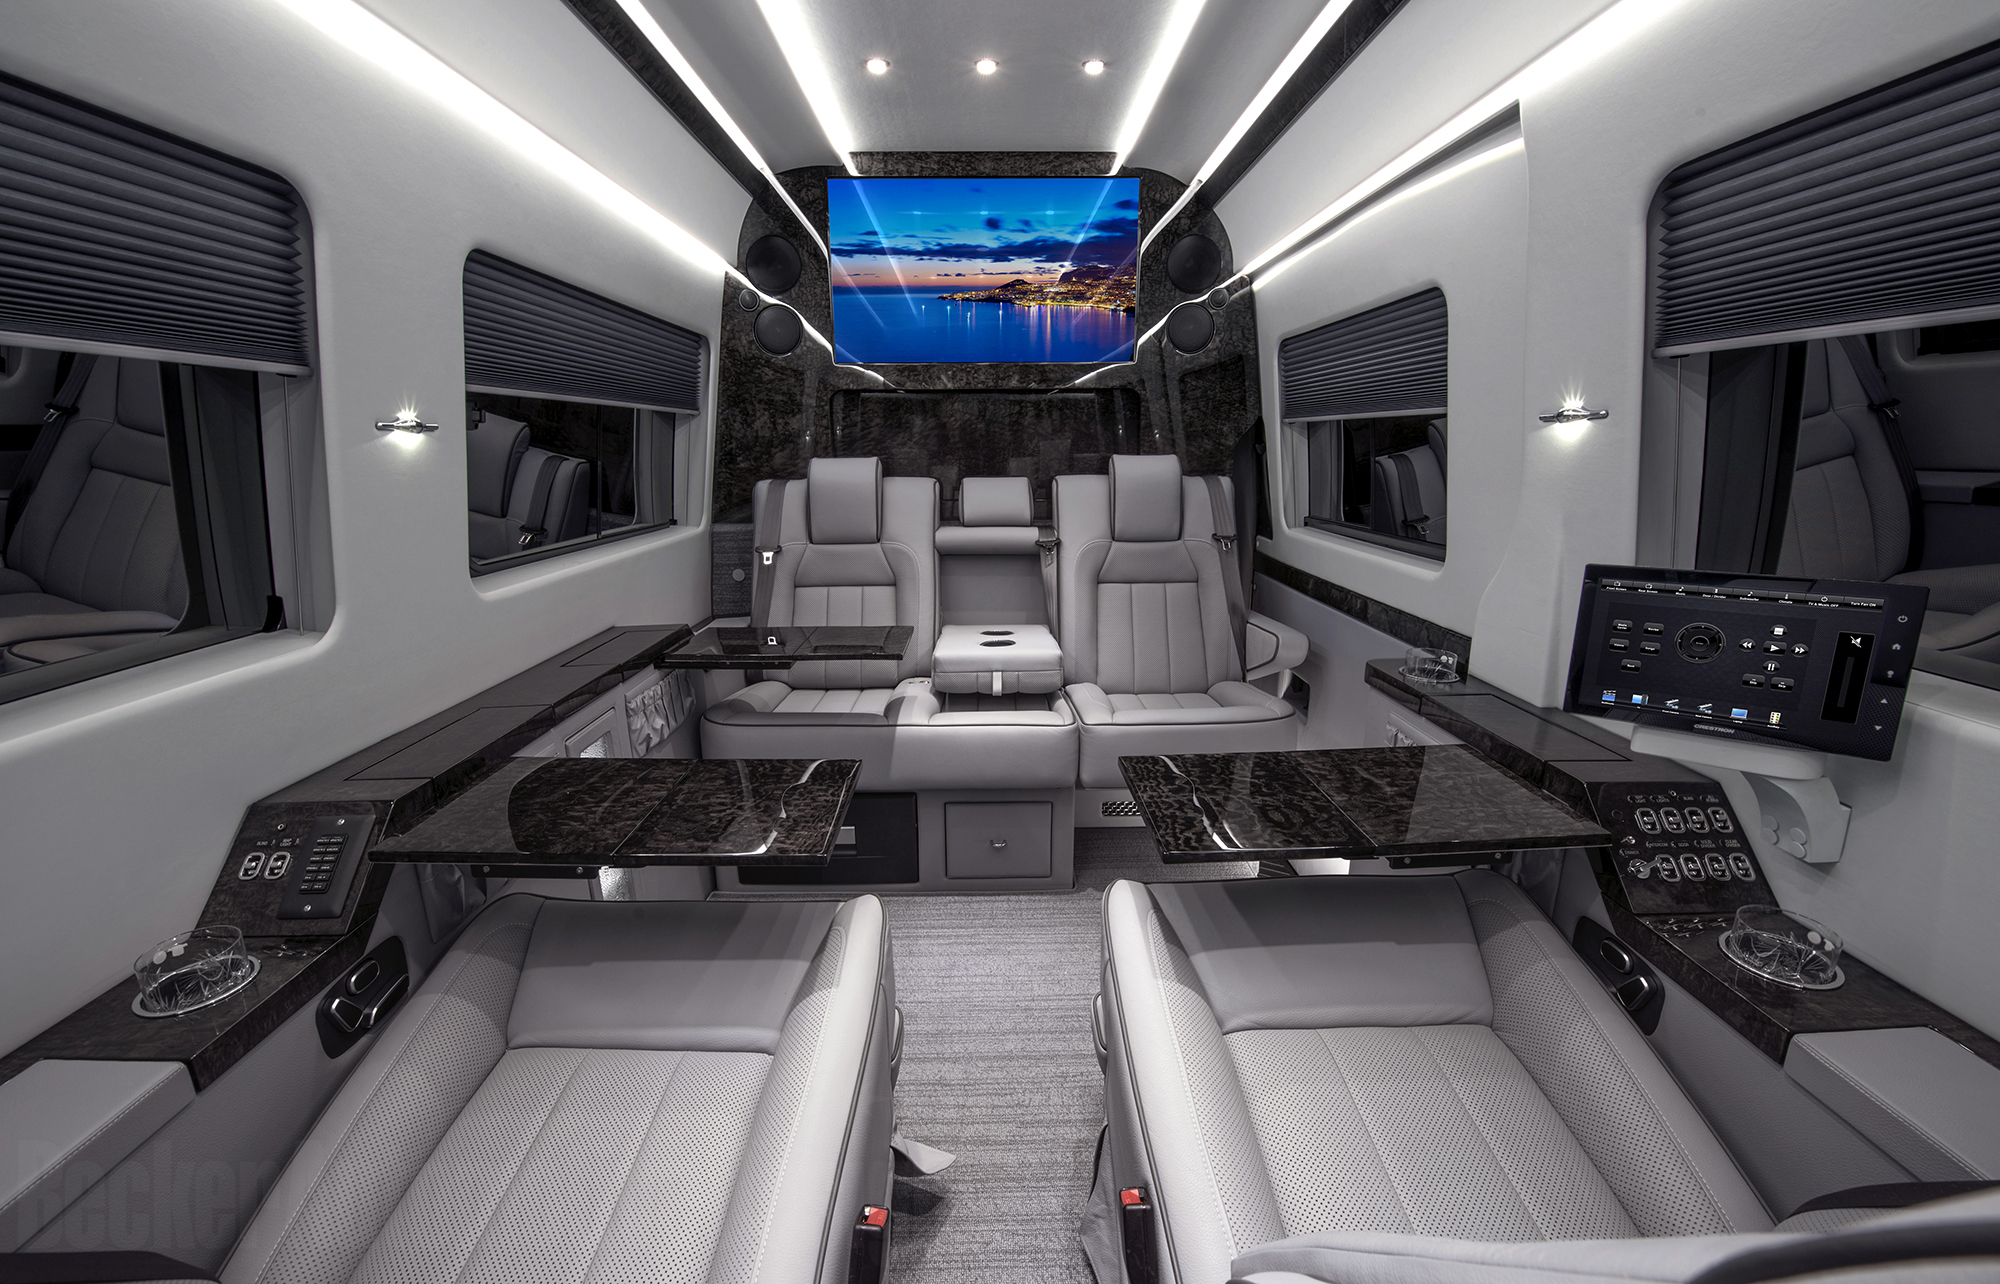 Mercedes Sprinter Luxury Amadeus Worldwide